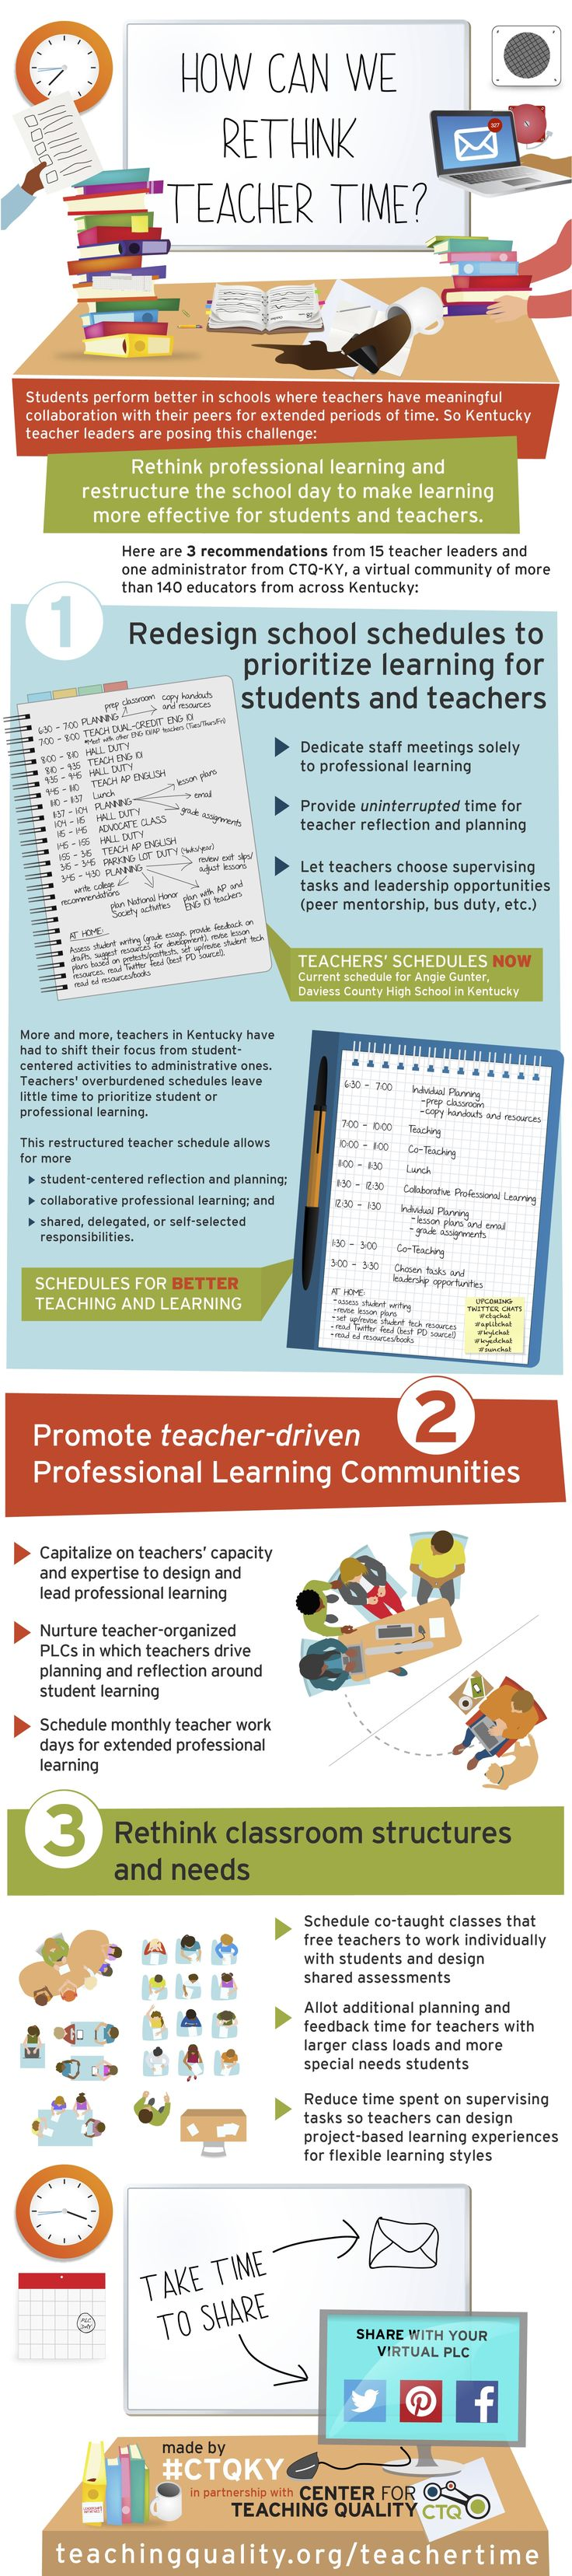 Rethinking Teacher Time Infographic - e-Learning Infographics